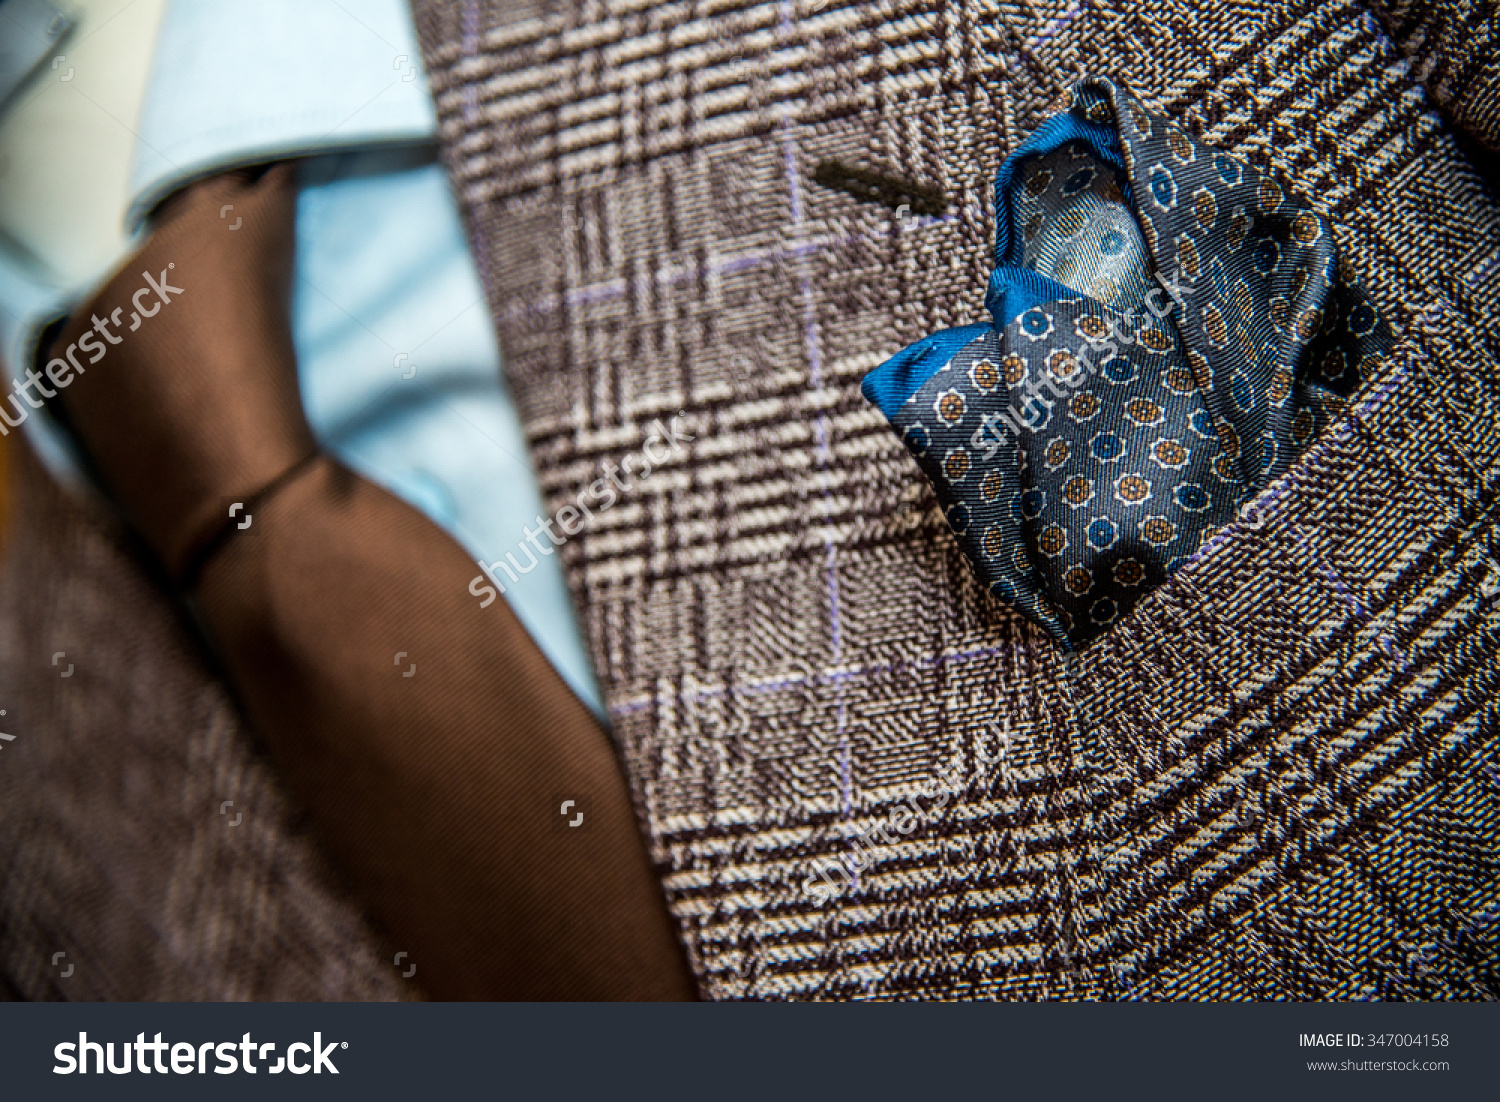 stock-photo-beautiful-blue-suits-with-tie-tie-clip-and-handkerchief-on-a-mannequin-391300729.jpg